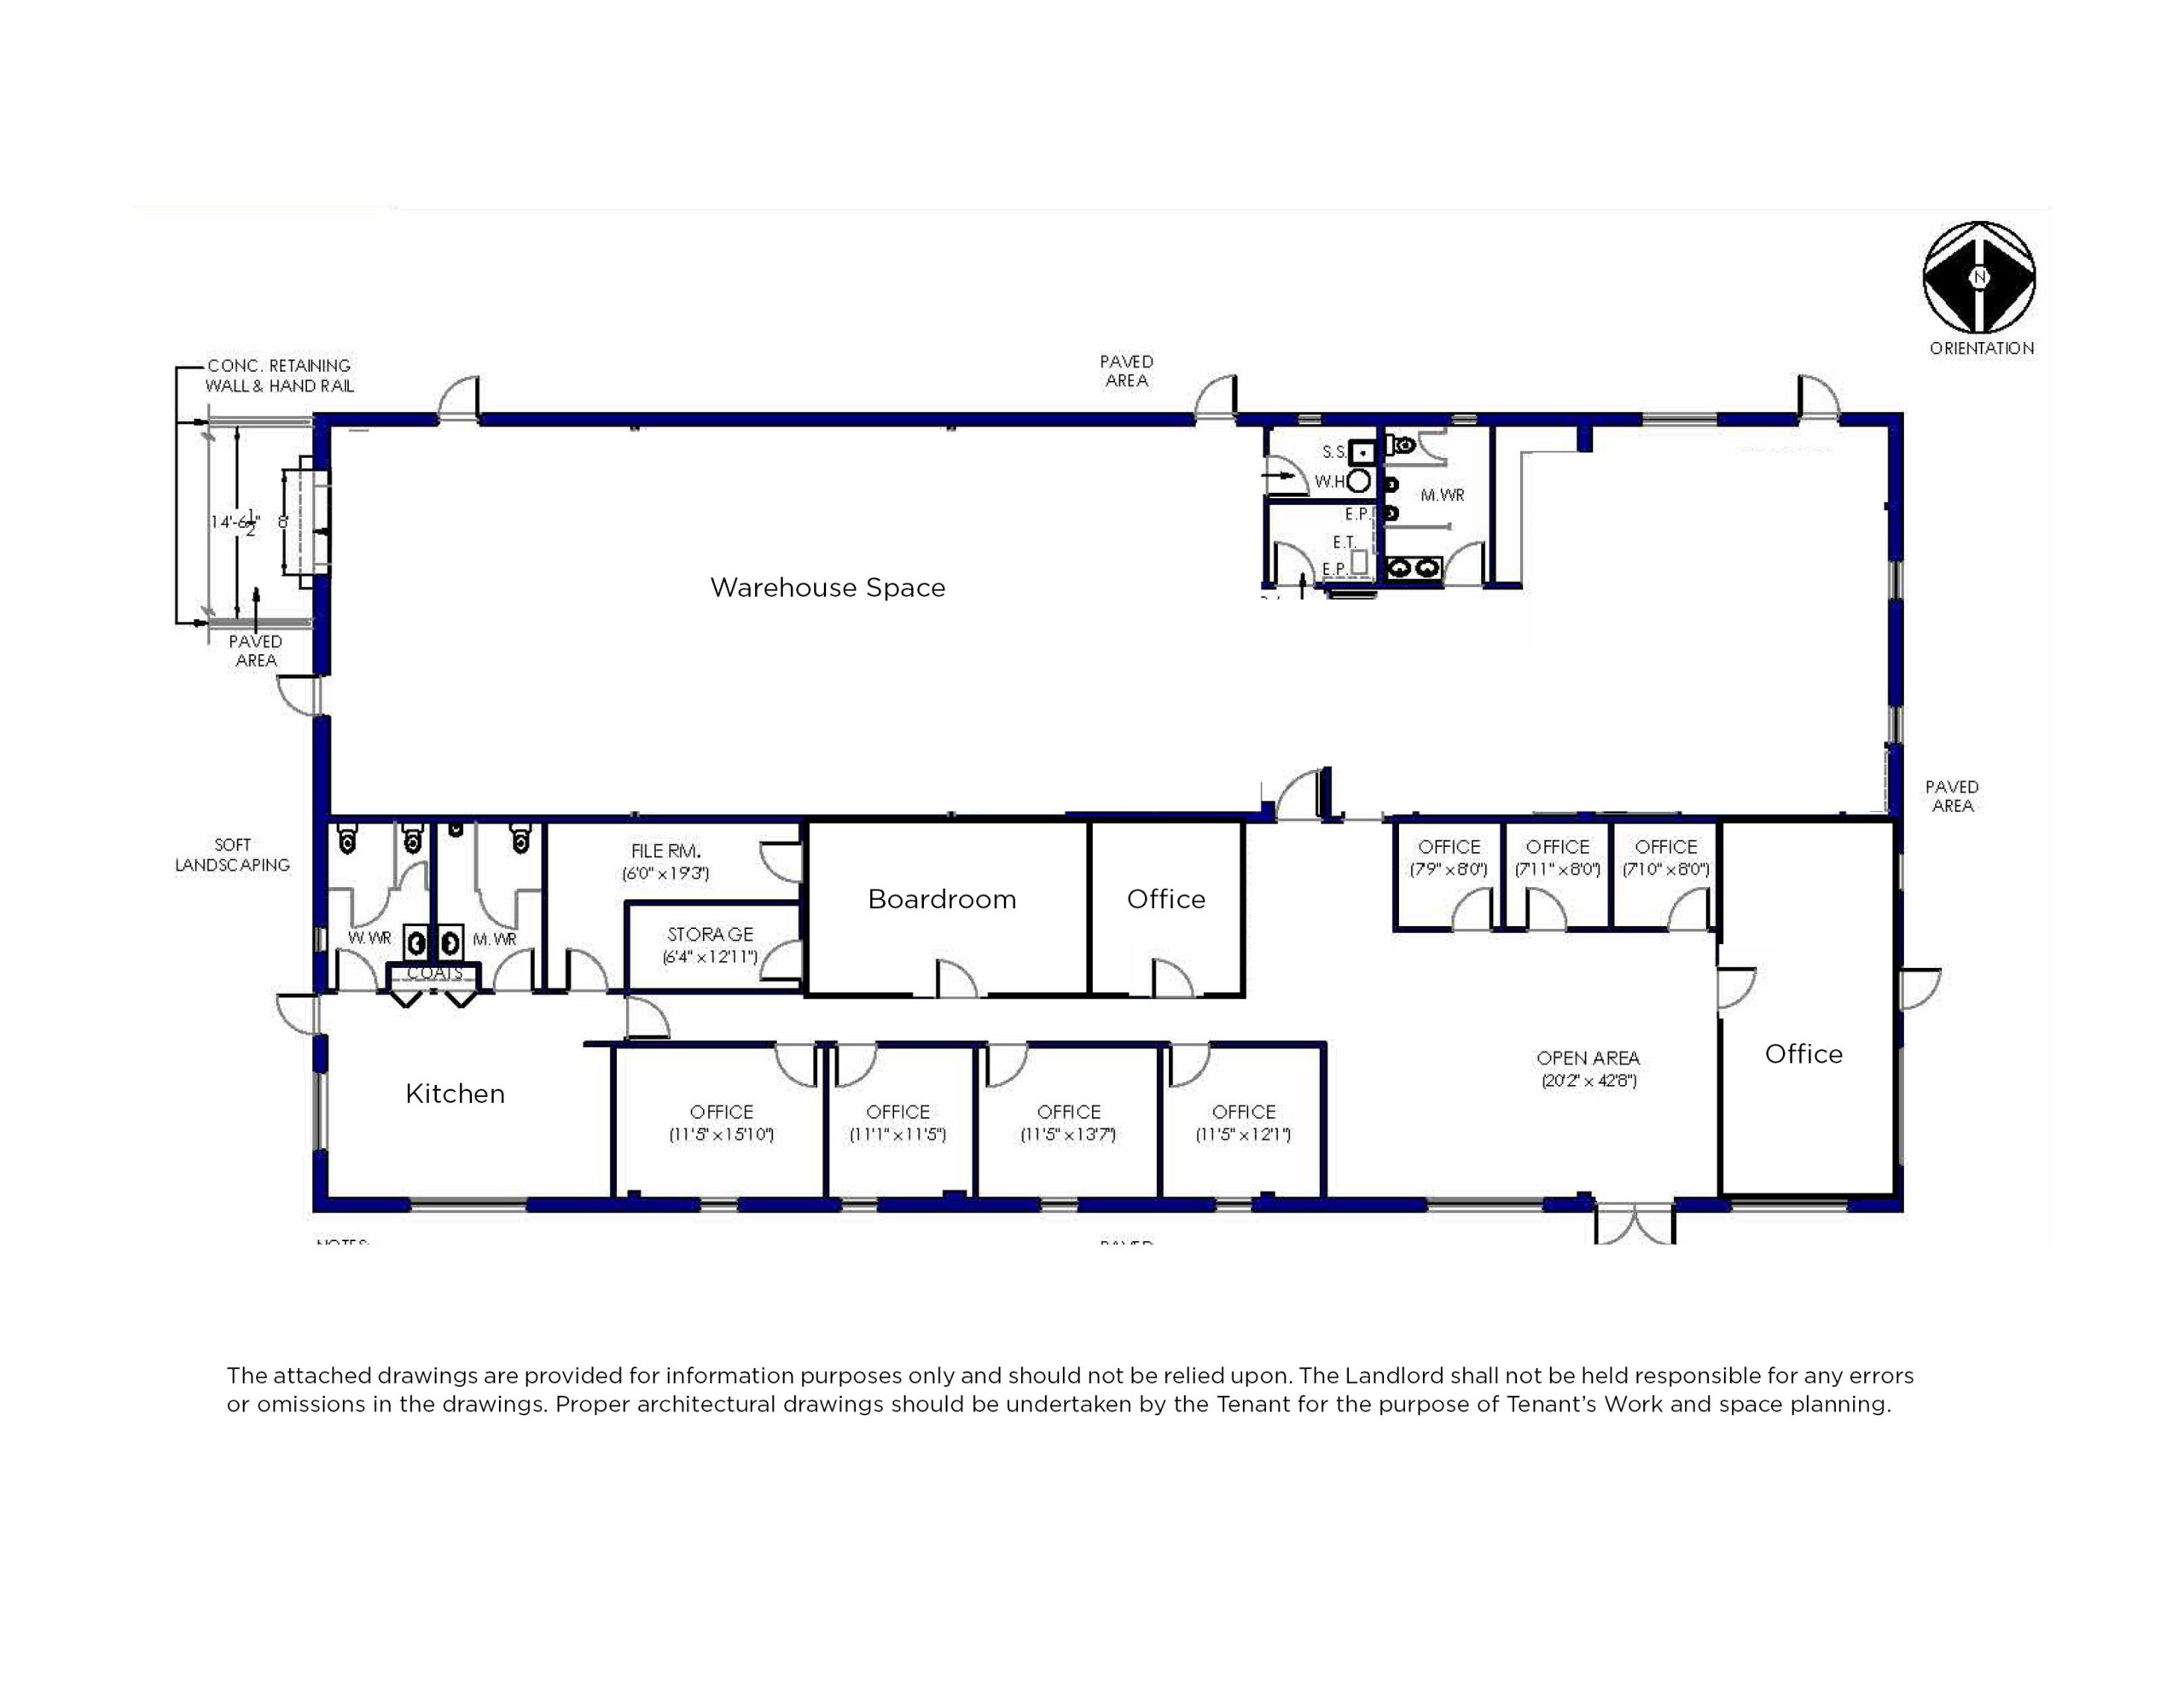 63 Roydon Floor plan